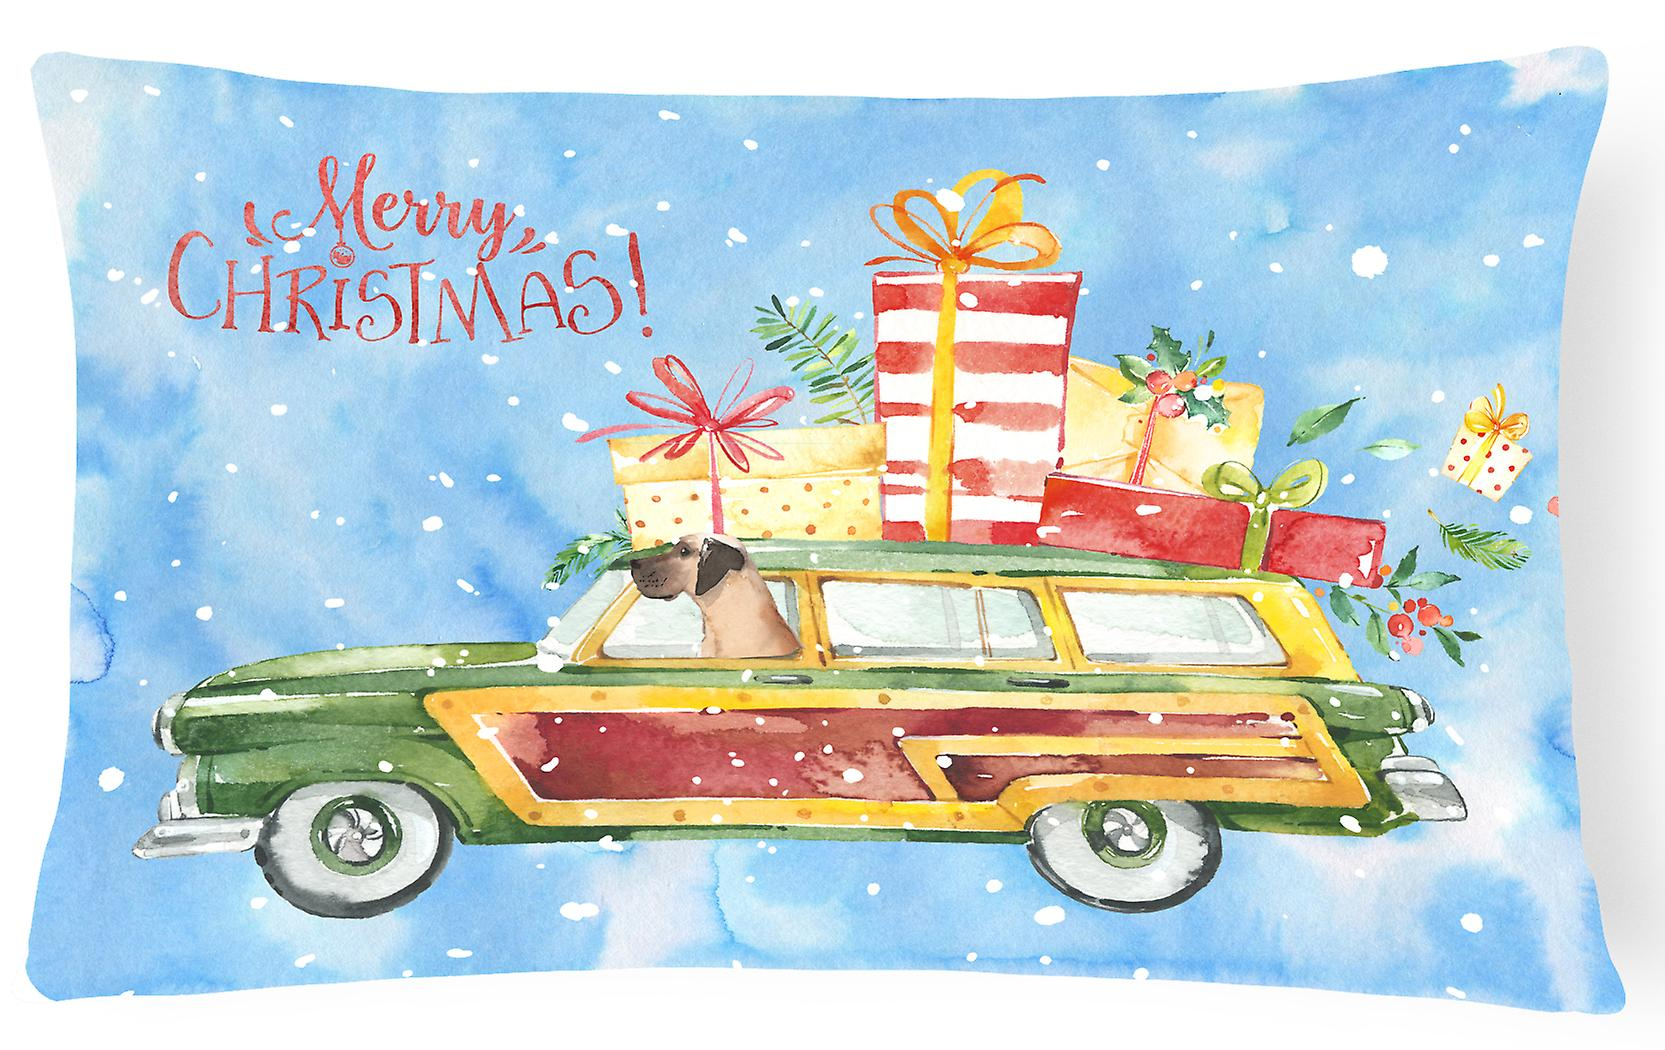 Merry Christmas Canvas Decorative Pillow Dane Fabric Great sCthdQr